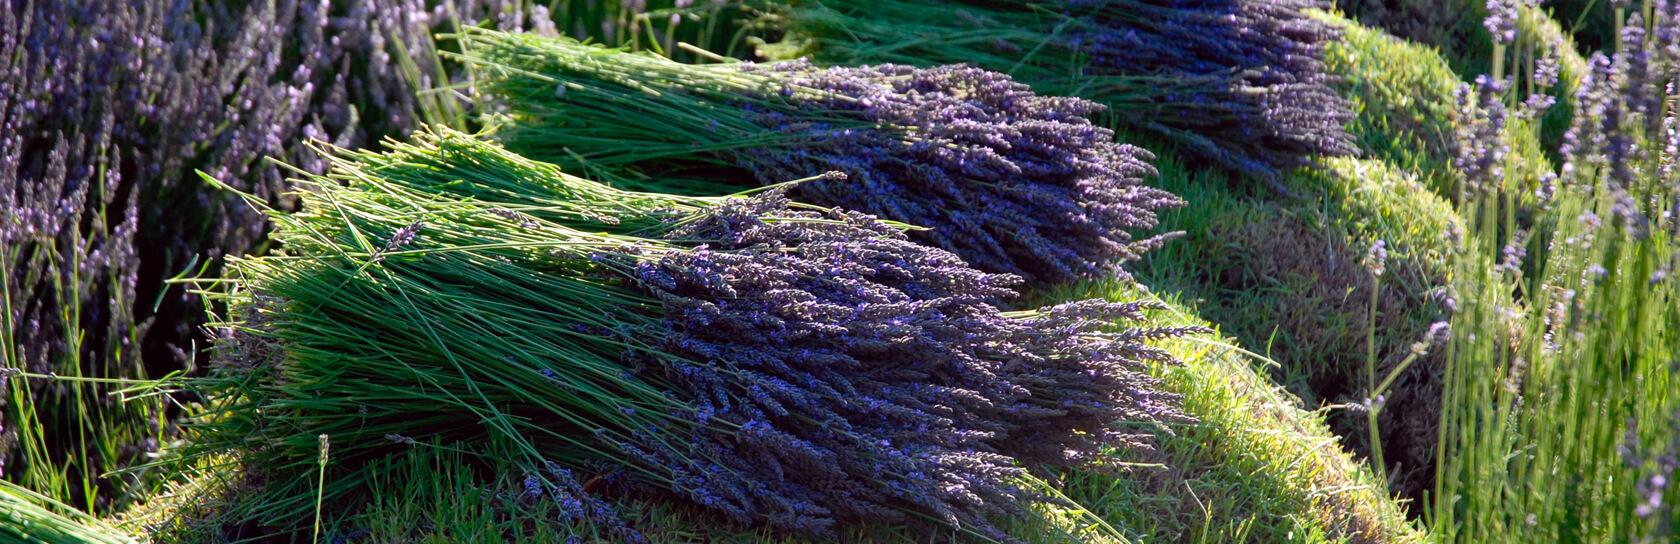 Lavender field image